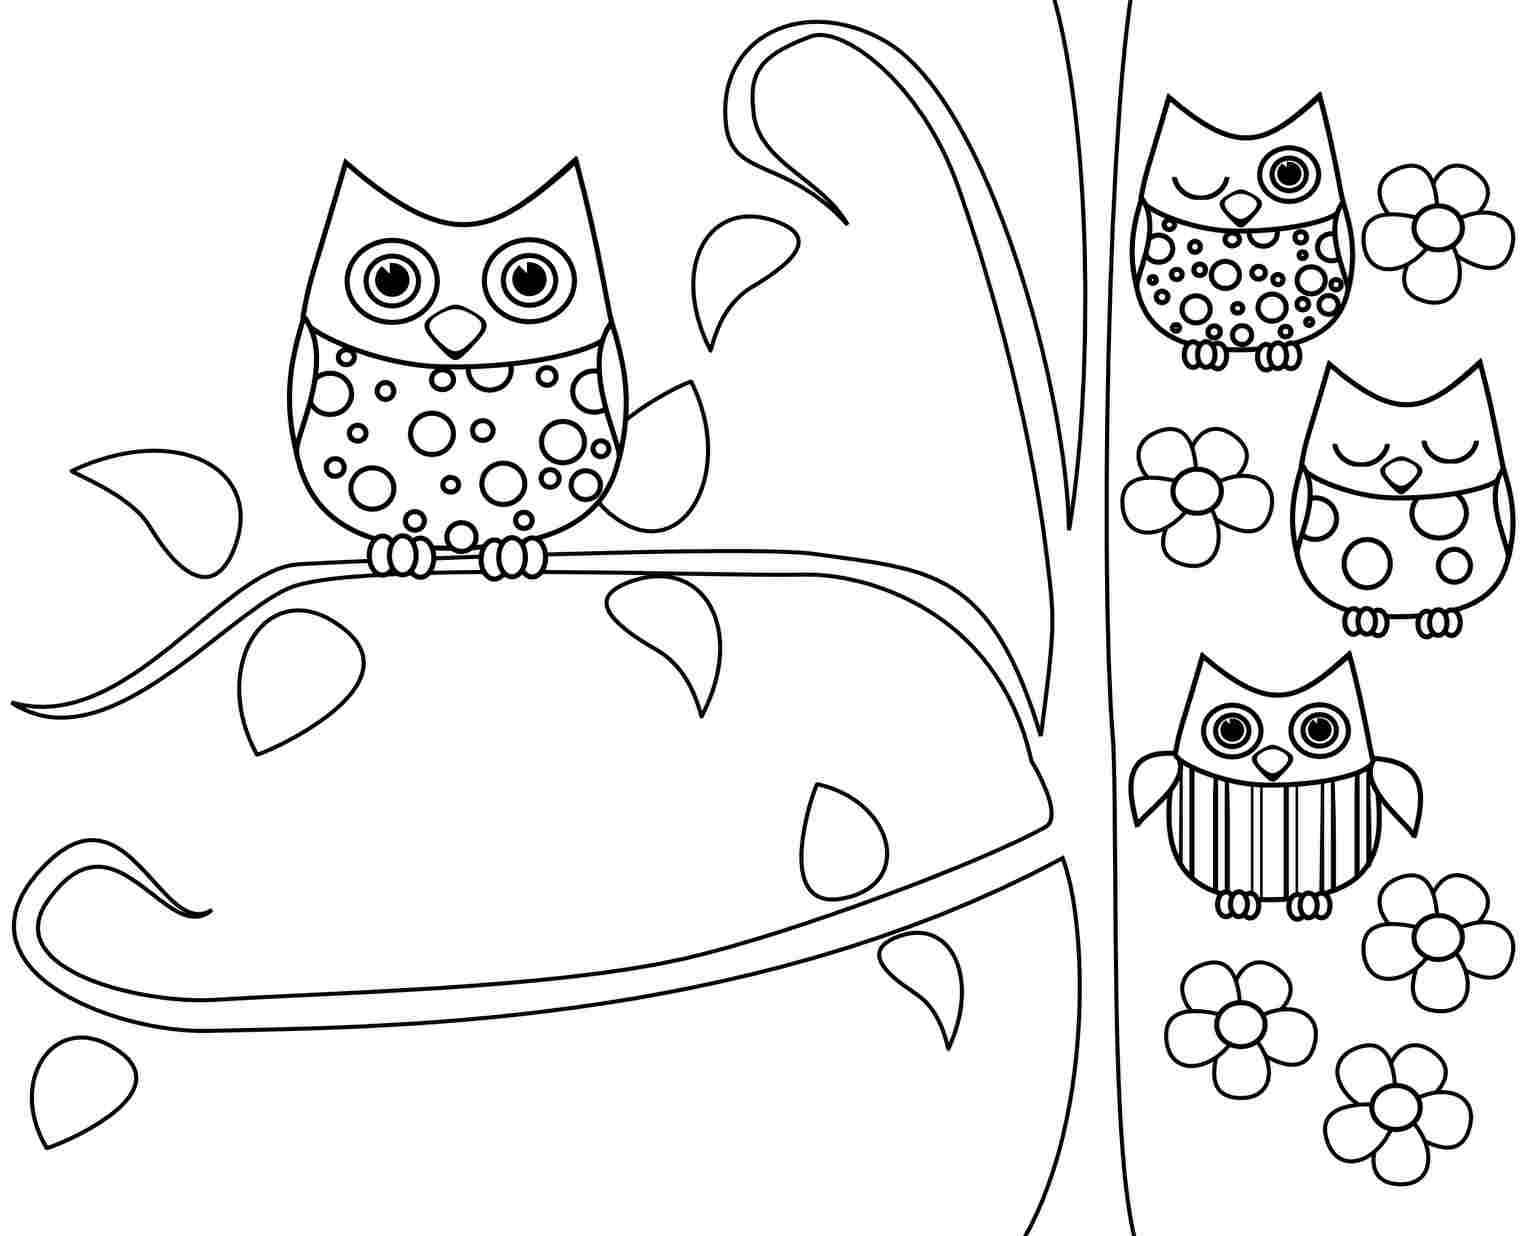 1532x1236 Owl Coloring Pages For Kids